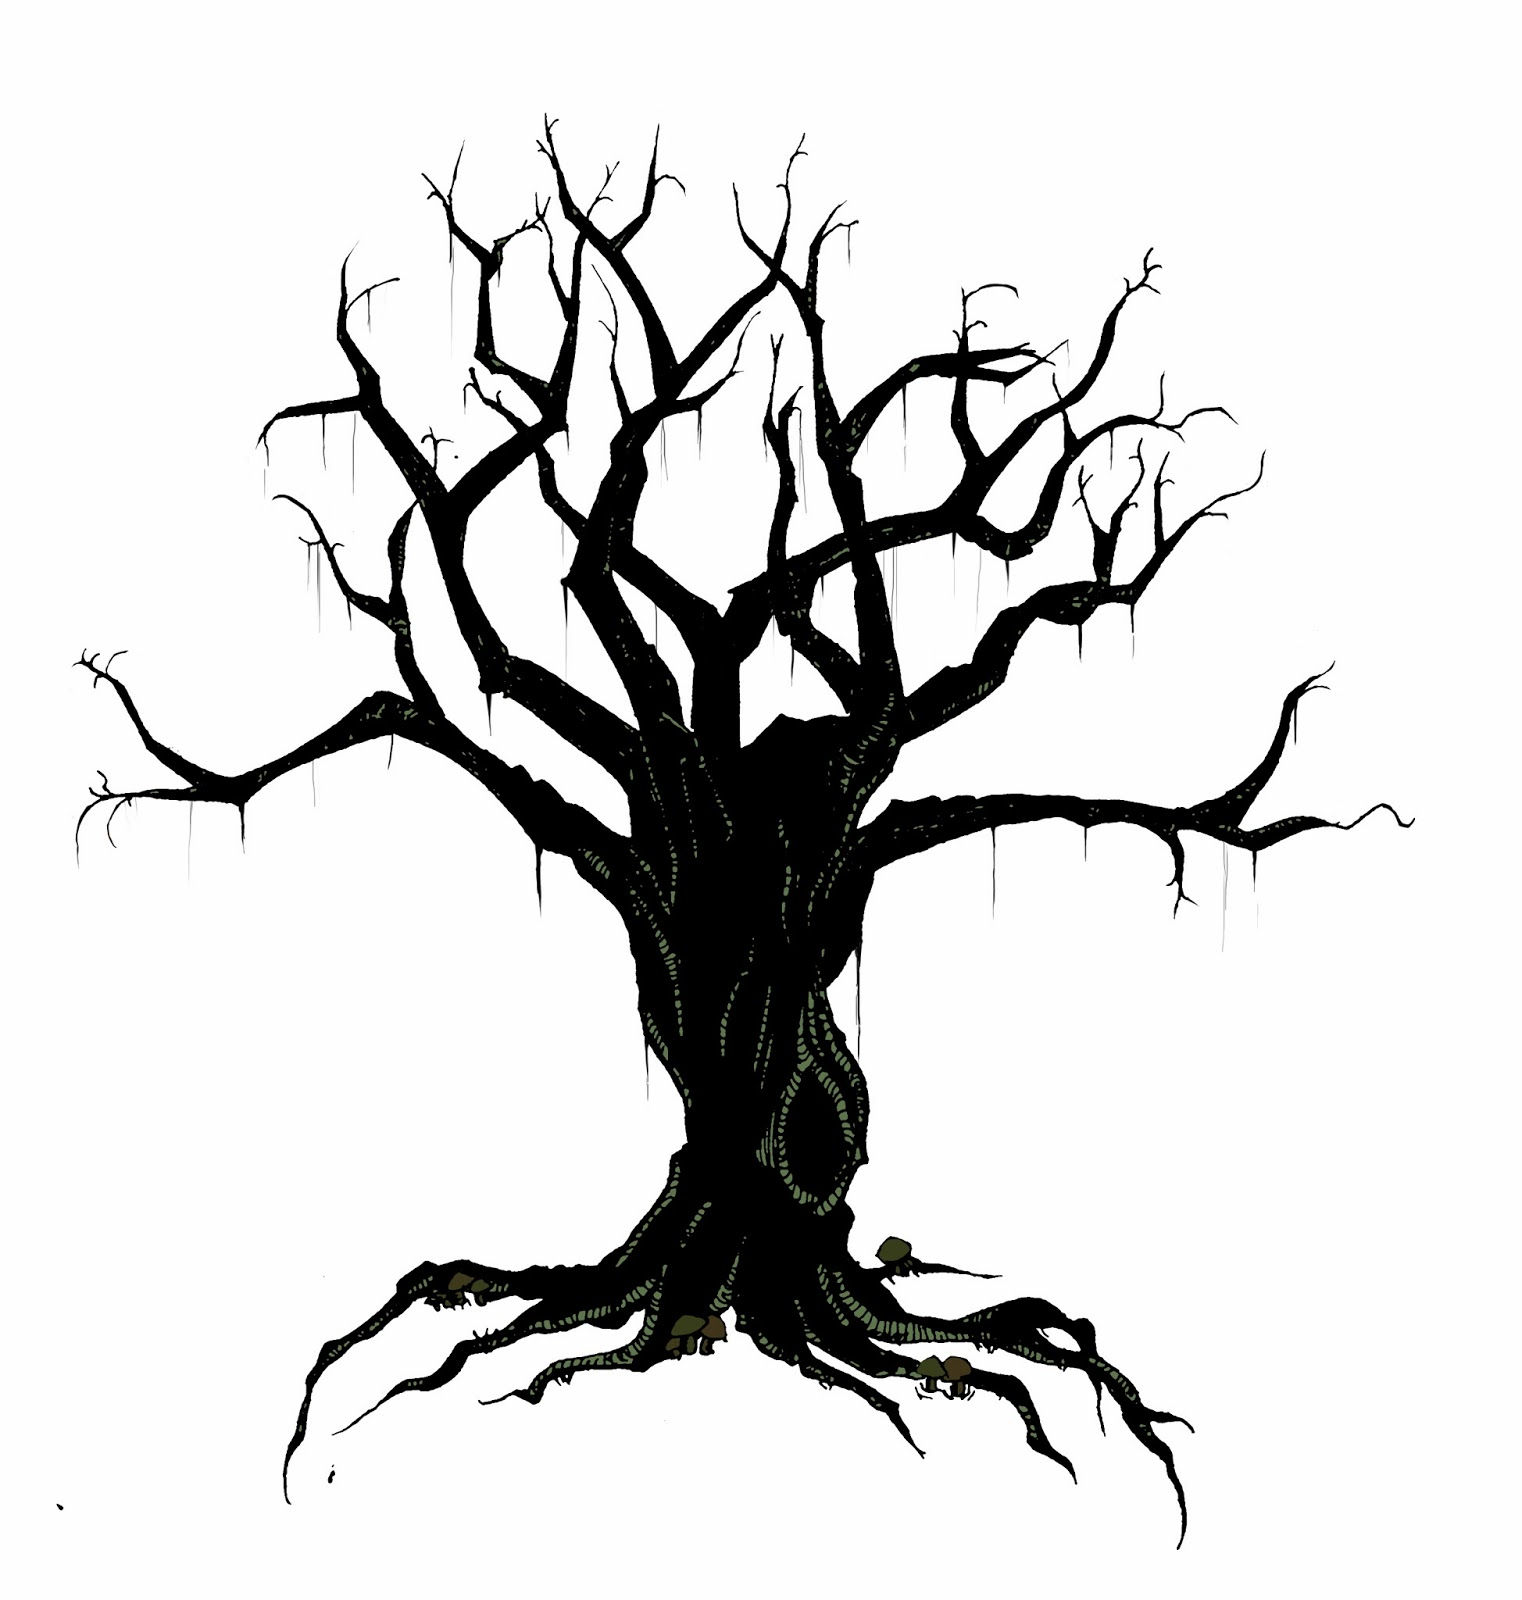 hight resolution of creepy tree drawing spooky clipart branch pencil and in color spooky clipart branch